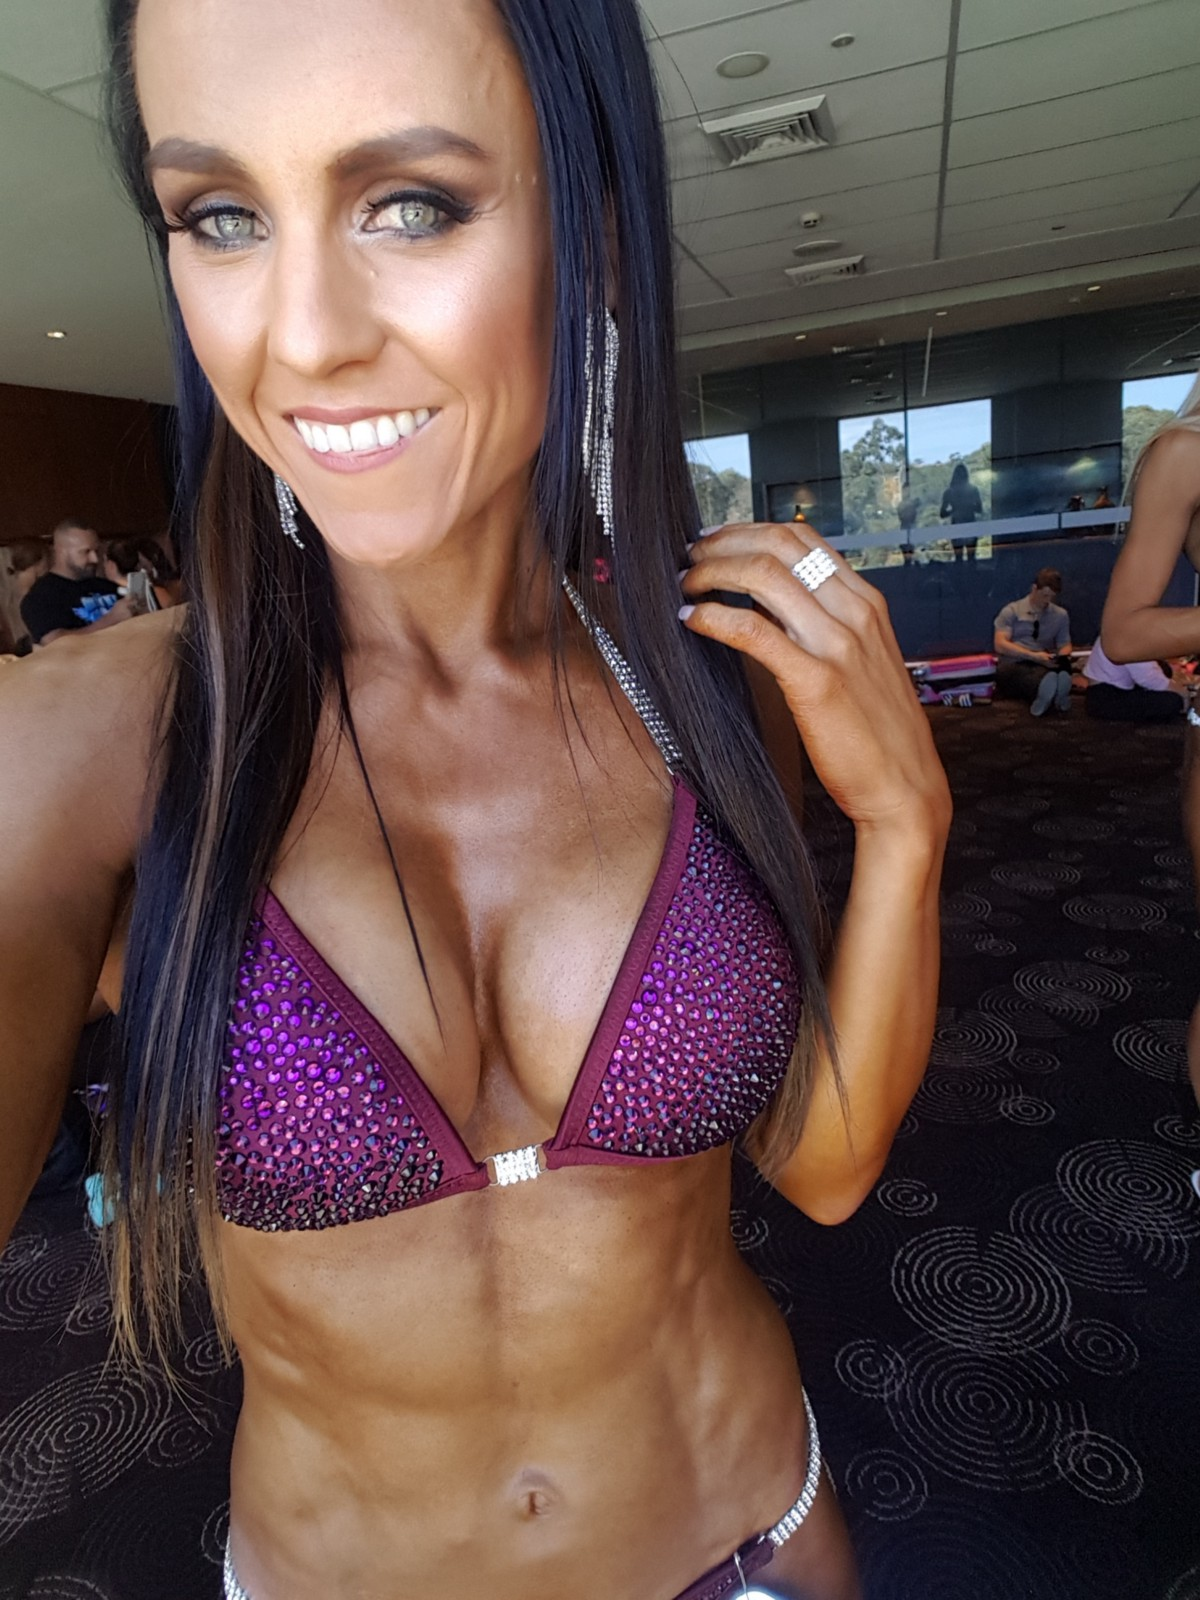 5e7a900277e96 3 ways preparing for a fitness competition changed my life